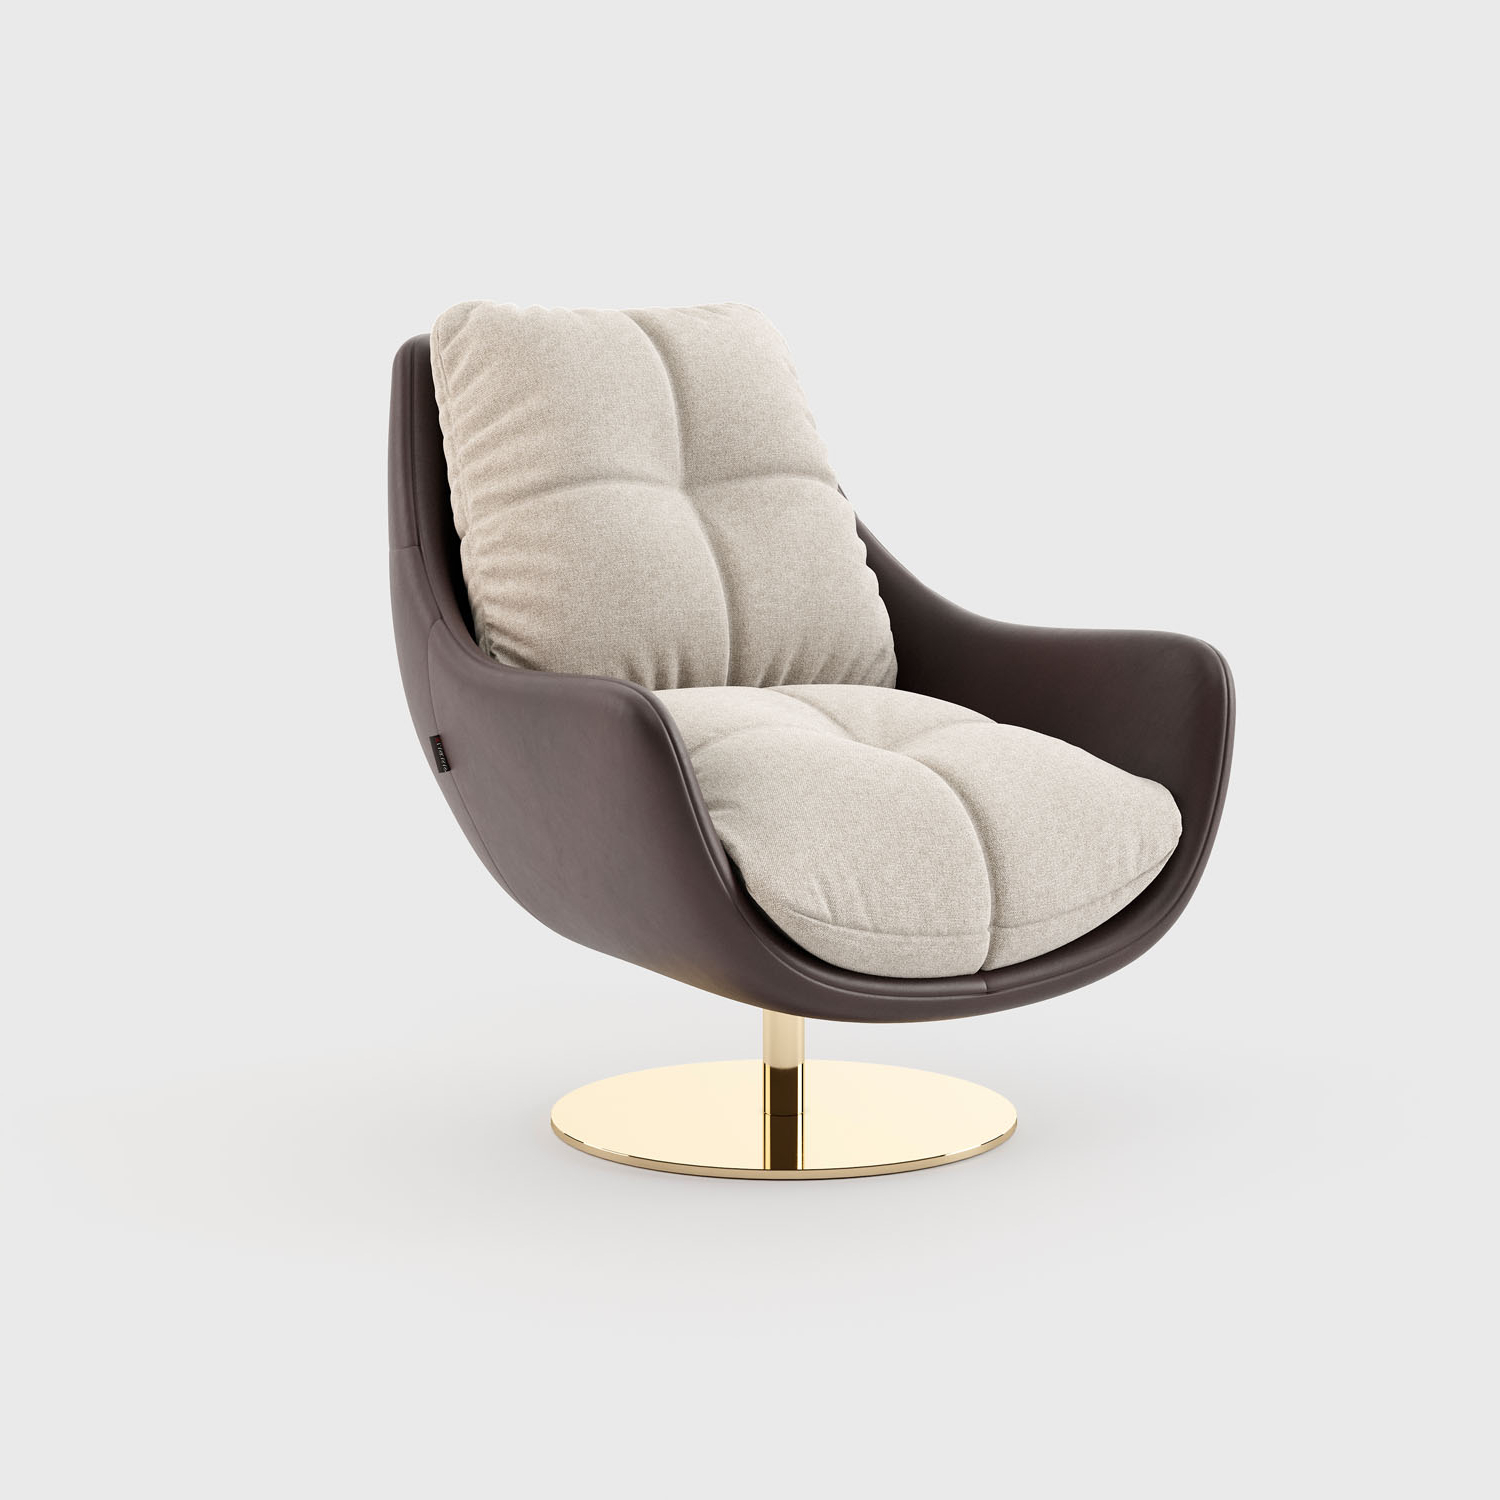 Modern Armchairs And Ottoman Throughout Most Recent Sophia Armchair With Ottoman (View 12 of 20)